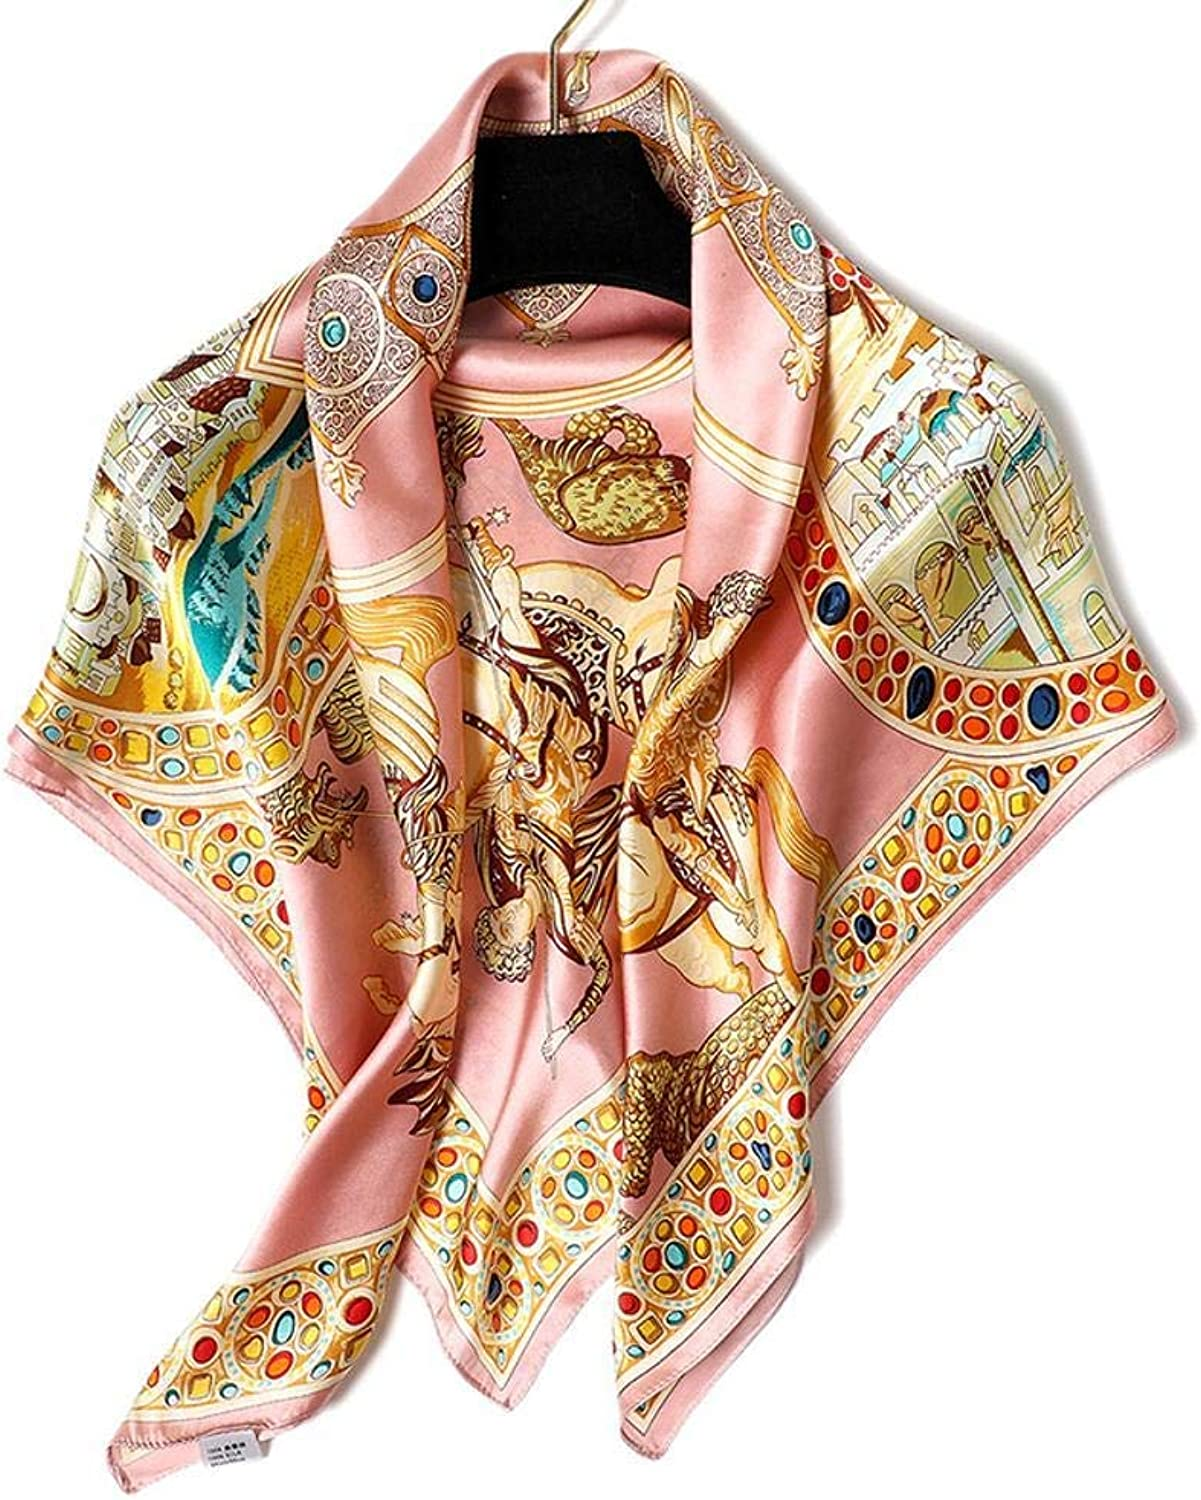 Paioup Ladies silk shawl silk scarf scarves Send family friends birthday gifts 88cm88cm Perfectly expresses unique temperament (color   Black, Size   M)